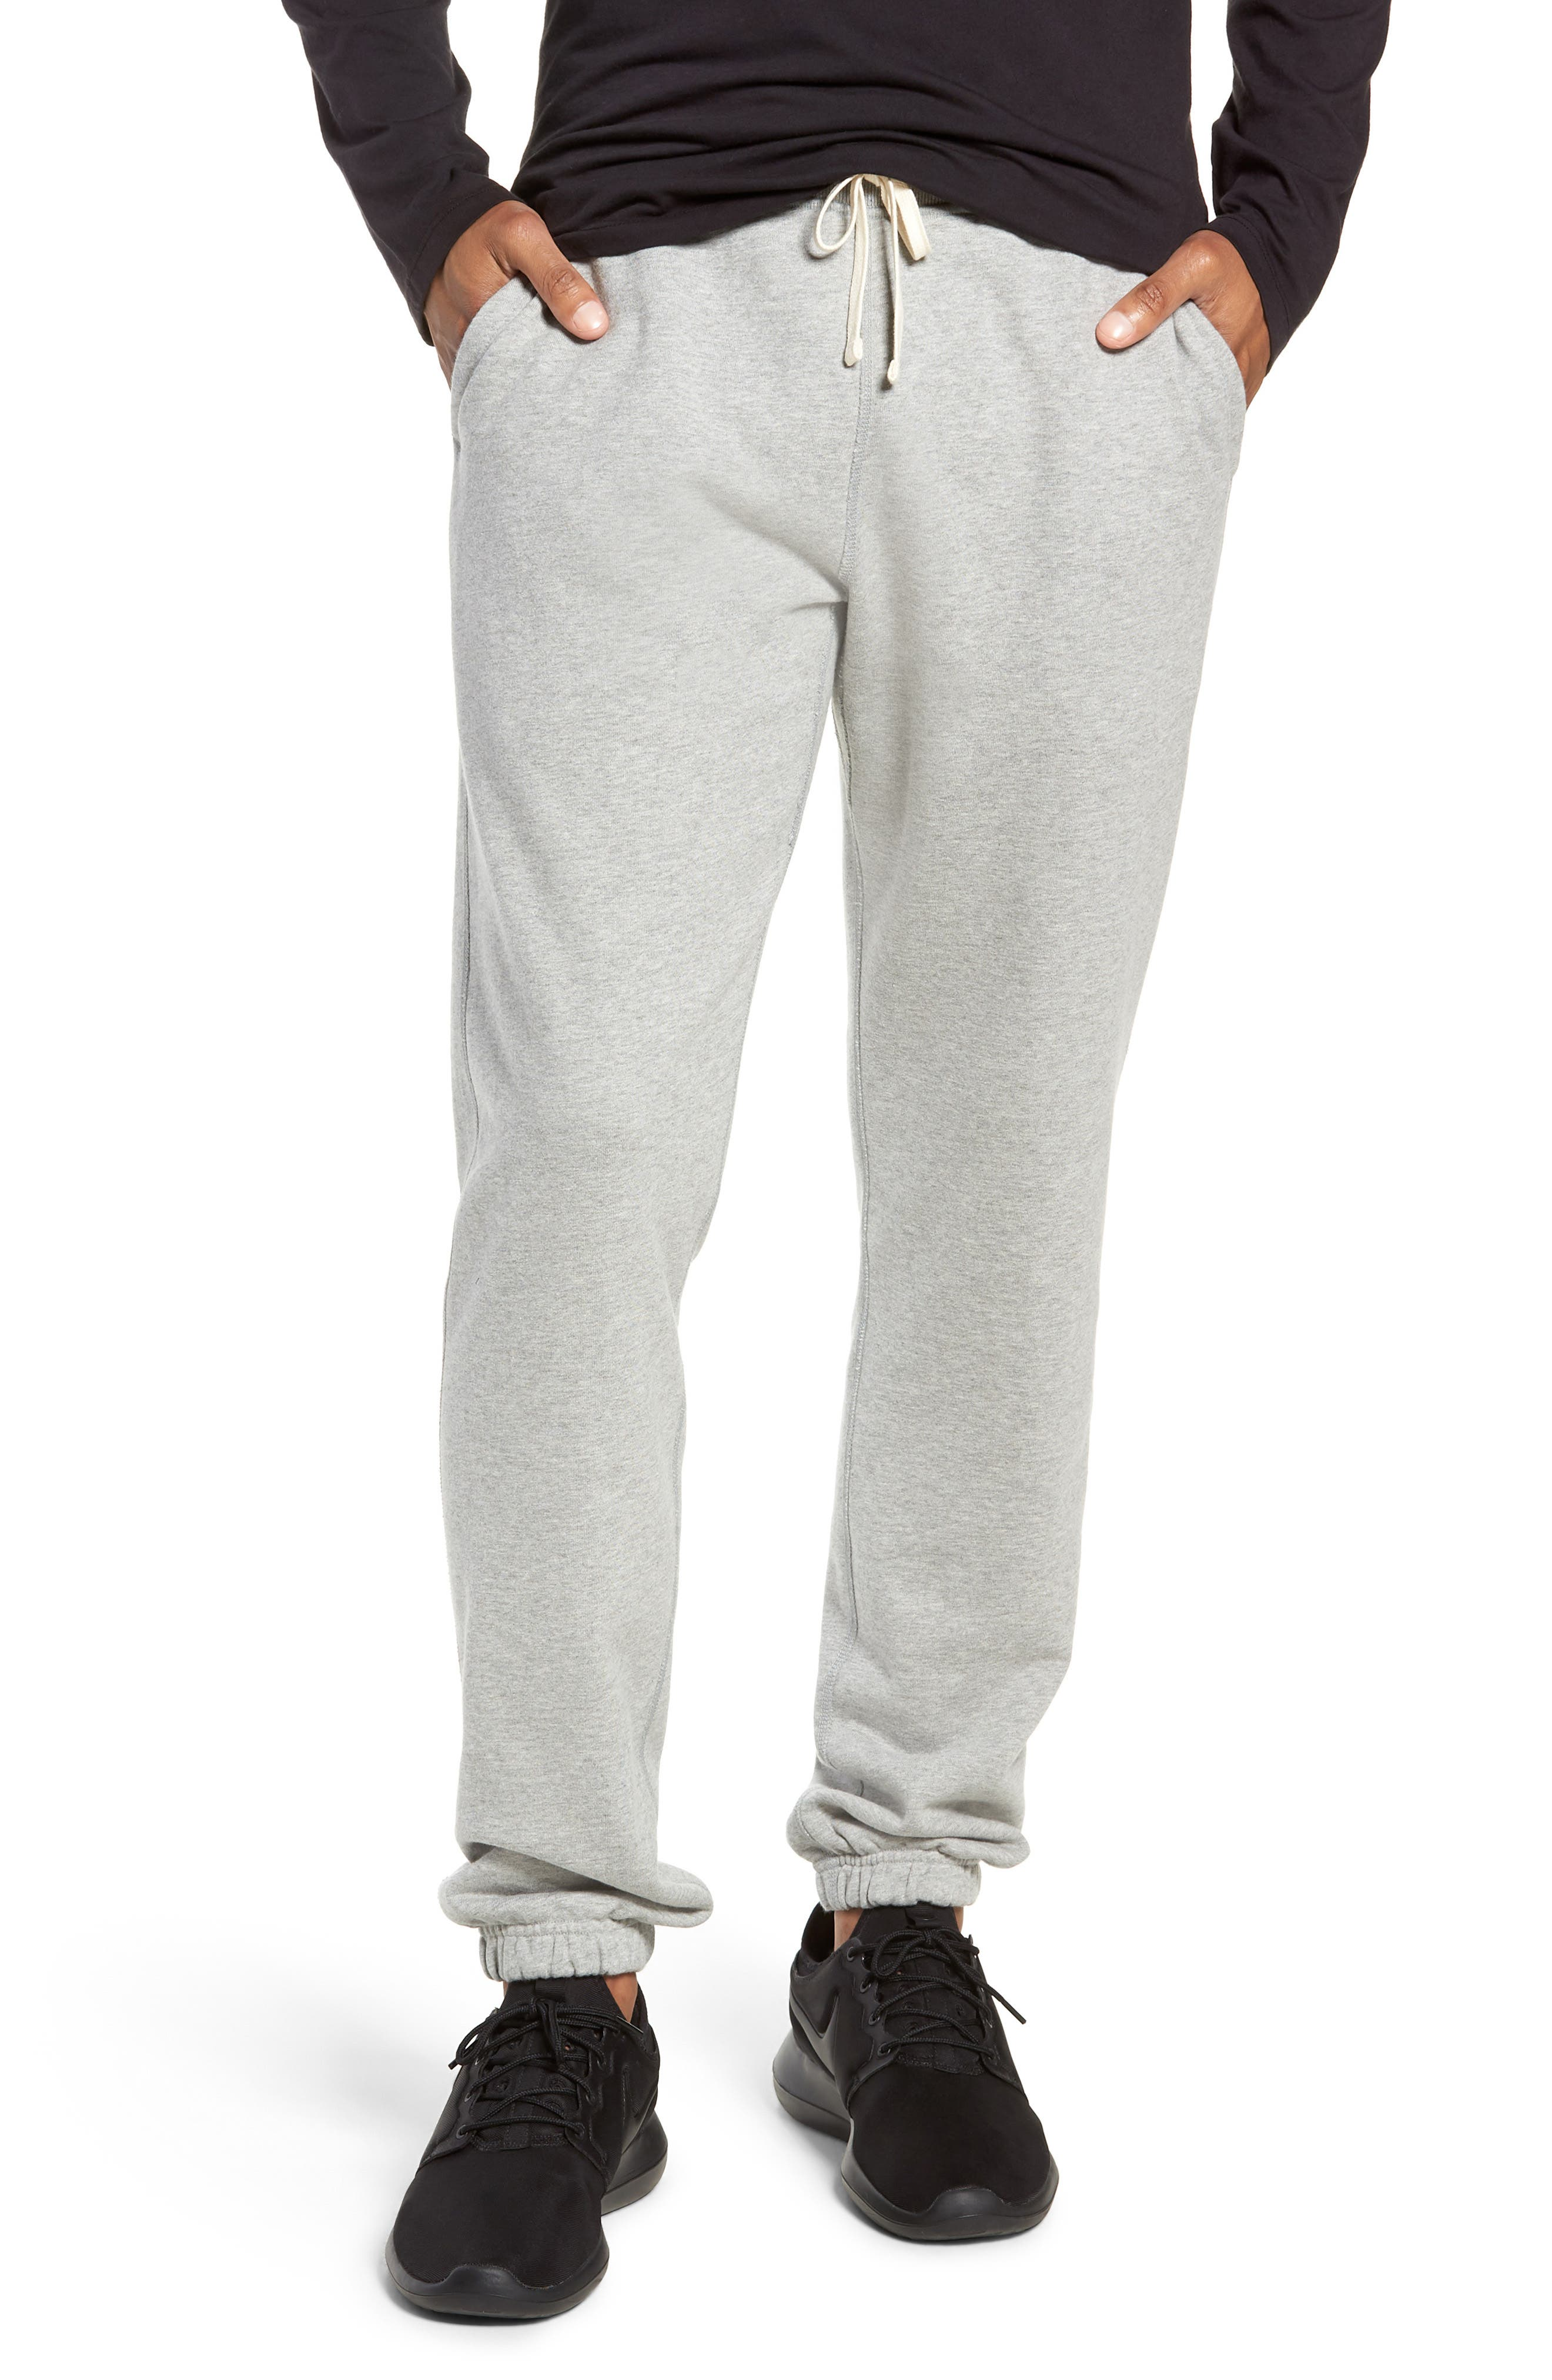 REIGNING CHAMP, Cotton Jogger Pants, Main thumbnail 1, color, HEATHER GREY